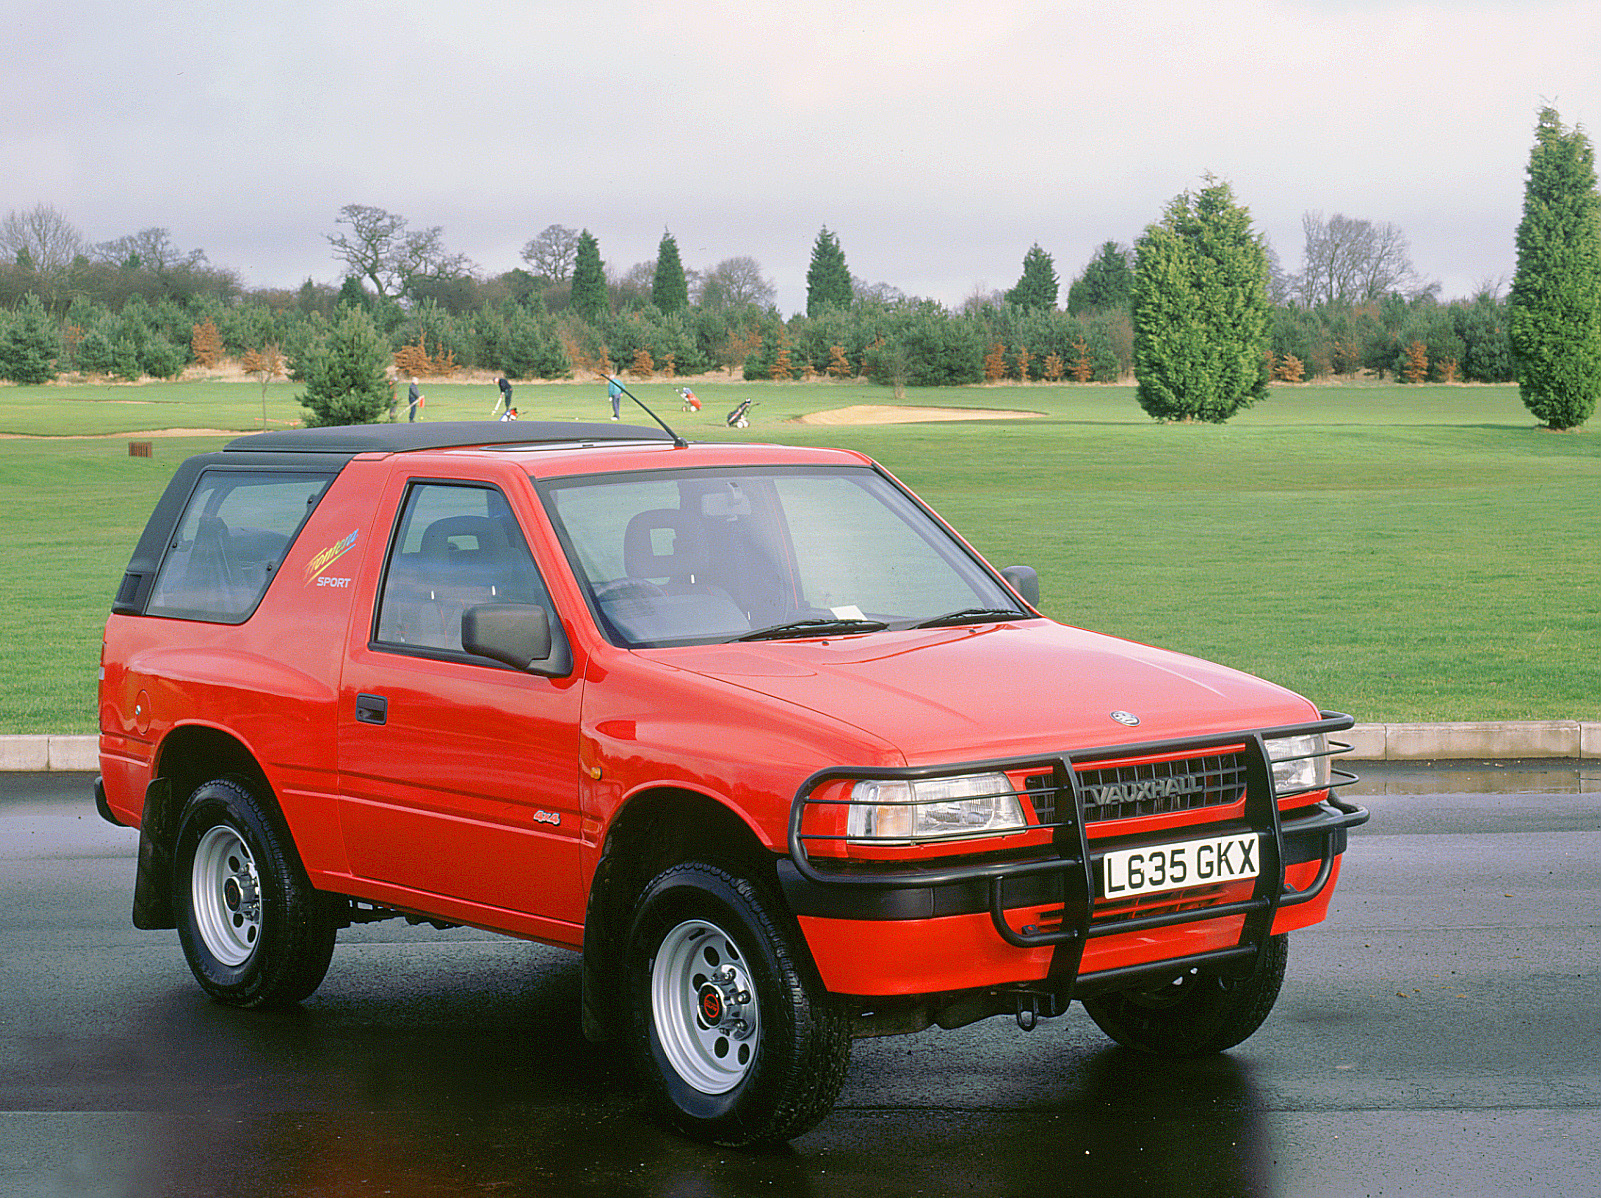 The Vauxhall Frontera was bulky, crude and heavy –and those were its good points